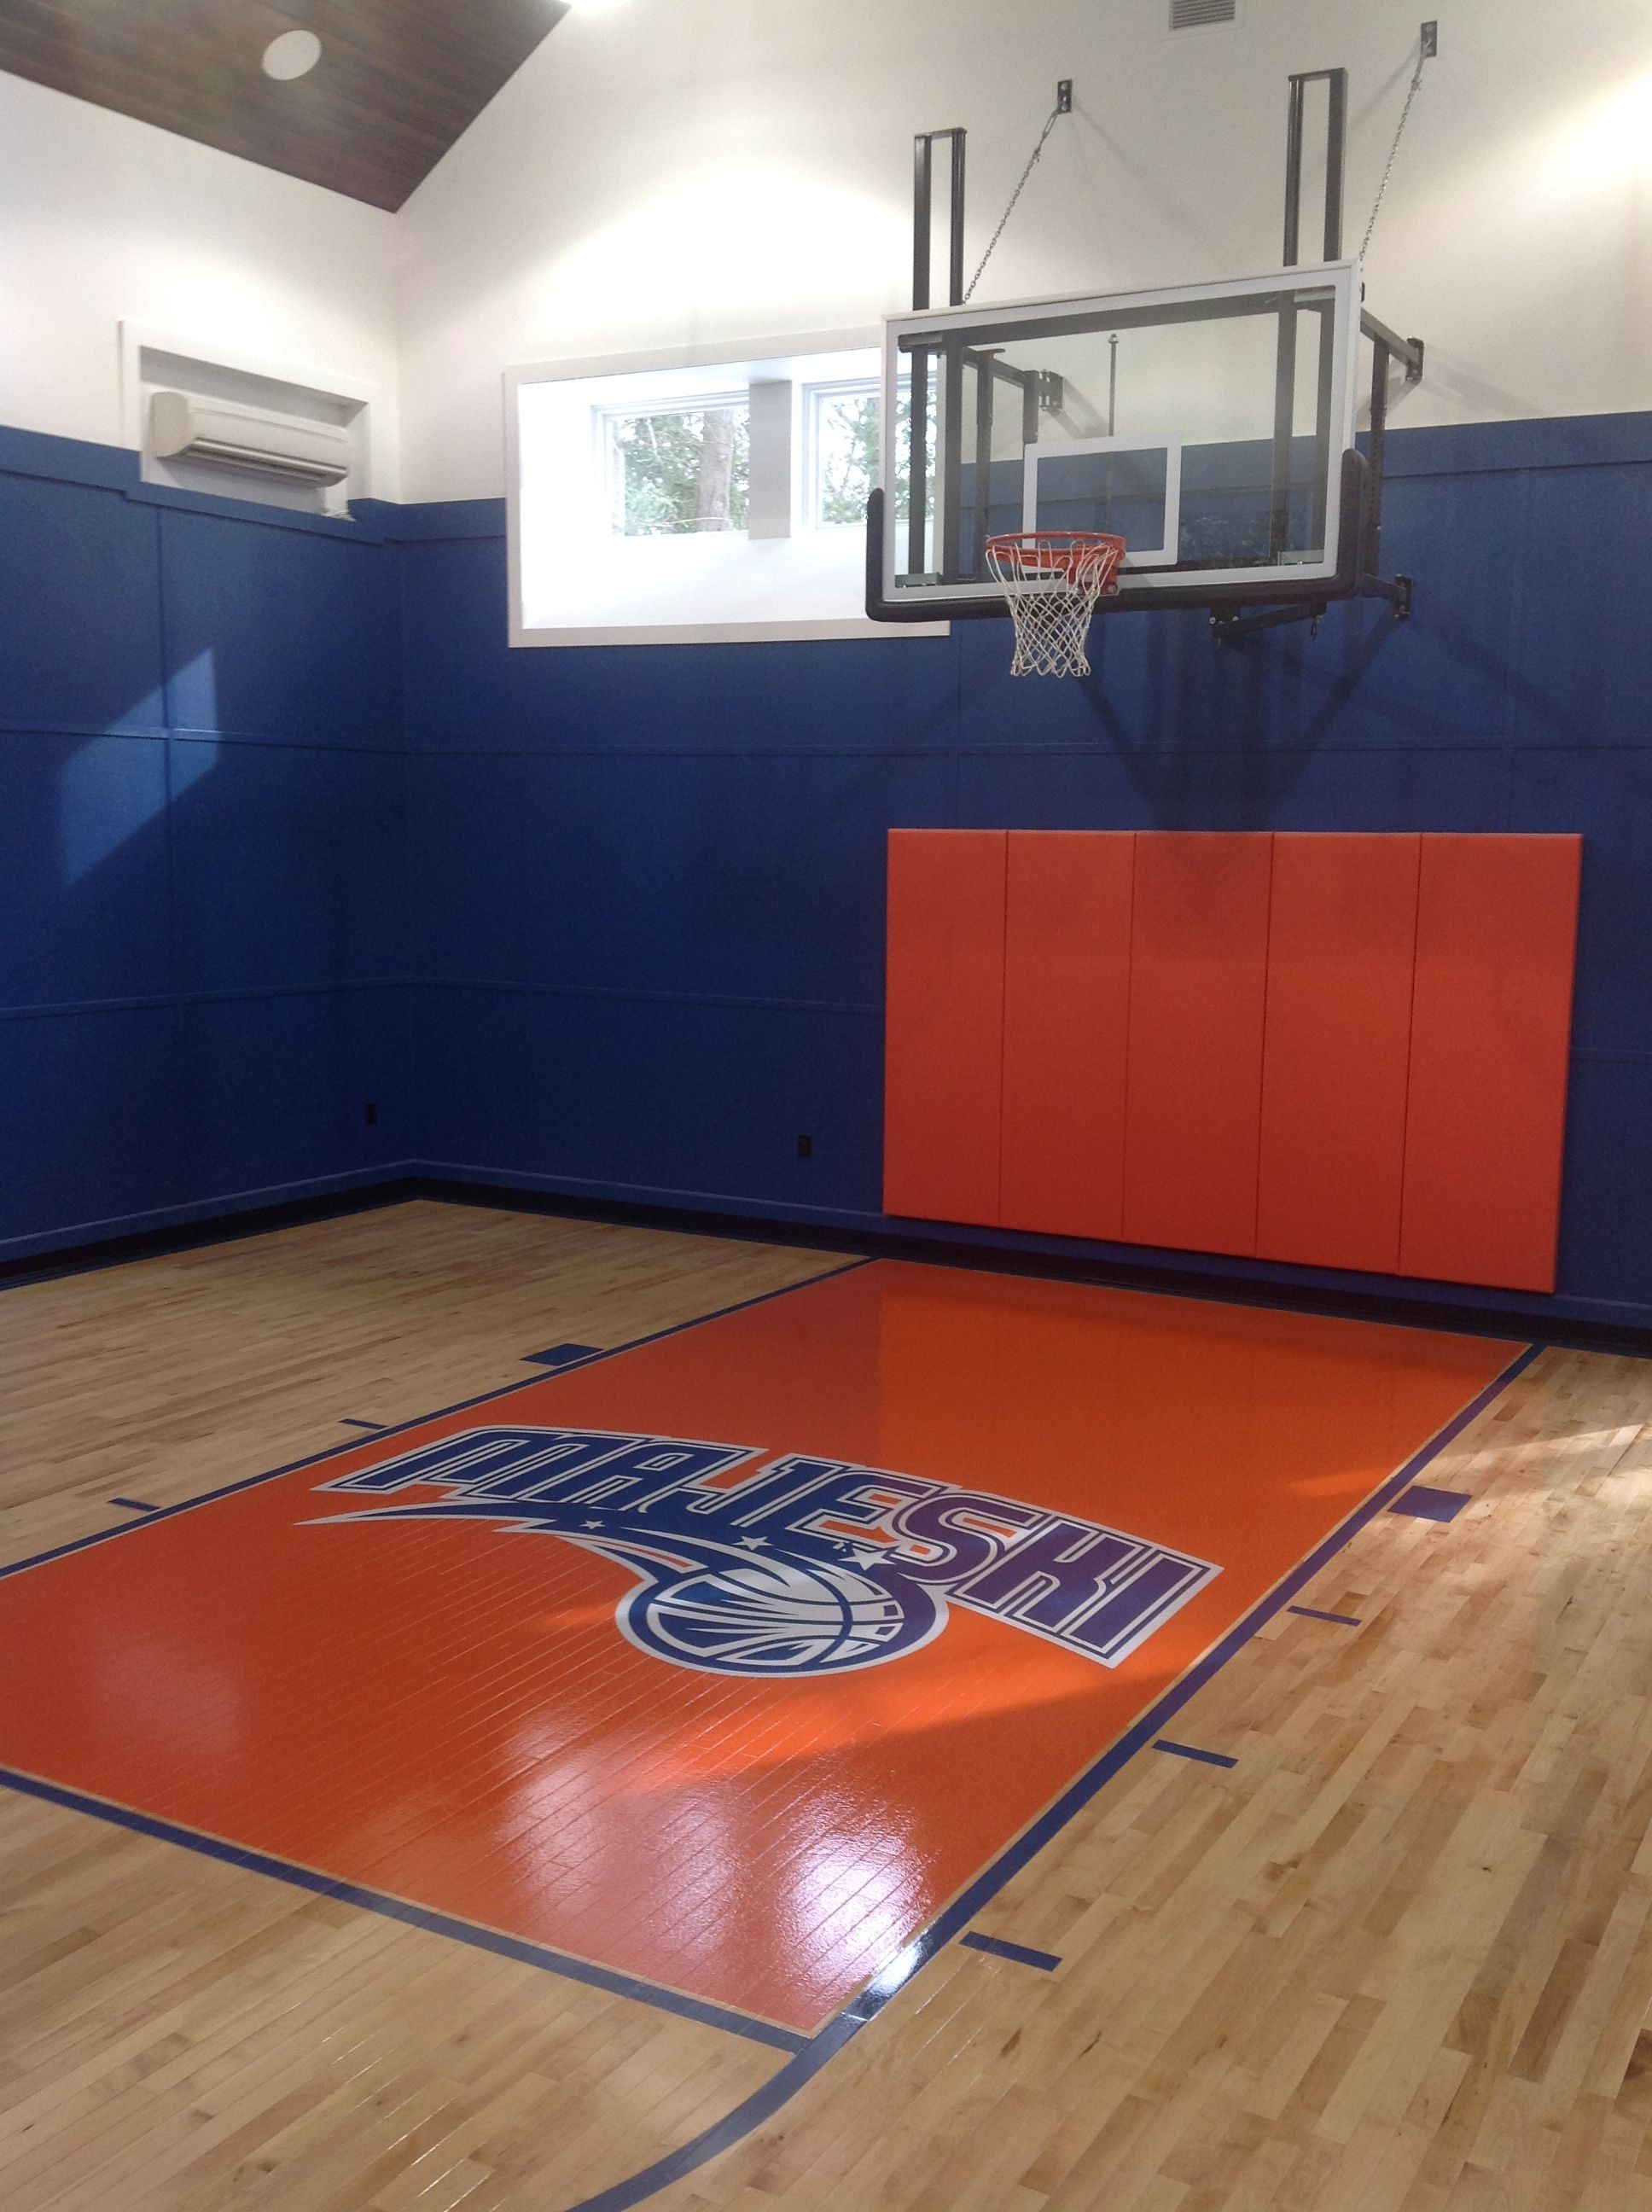 Indoor basketball court at a residence in princeton nj for Indoor basketball court price